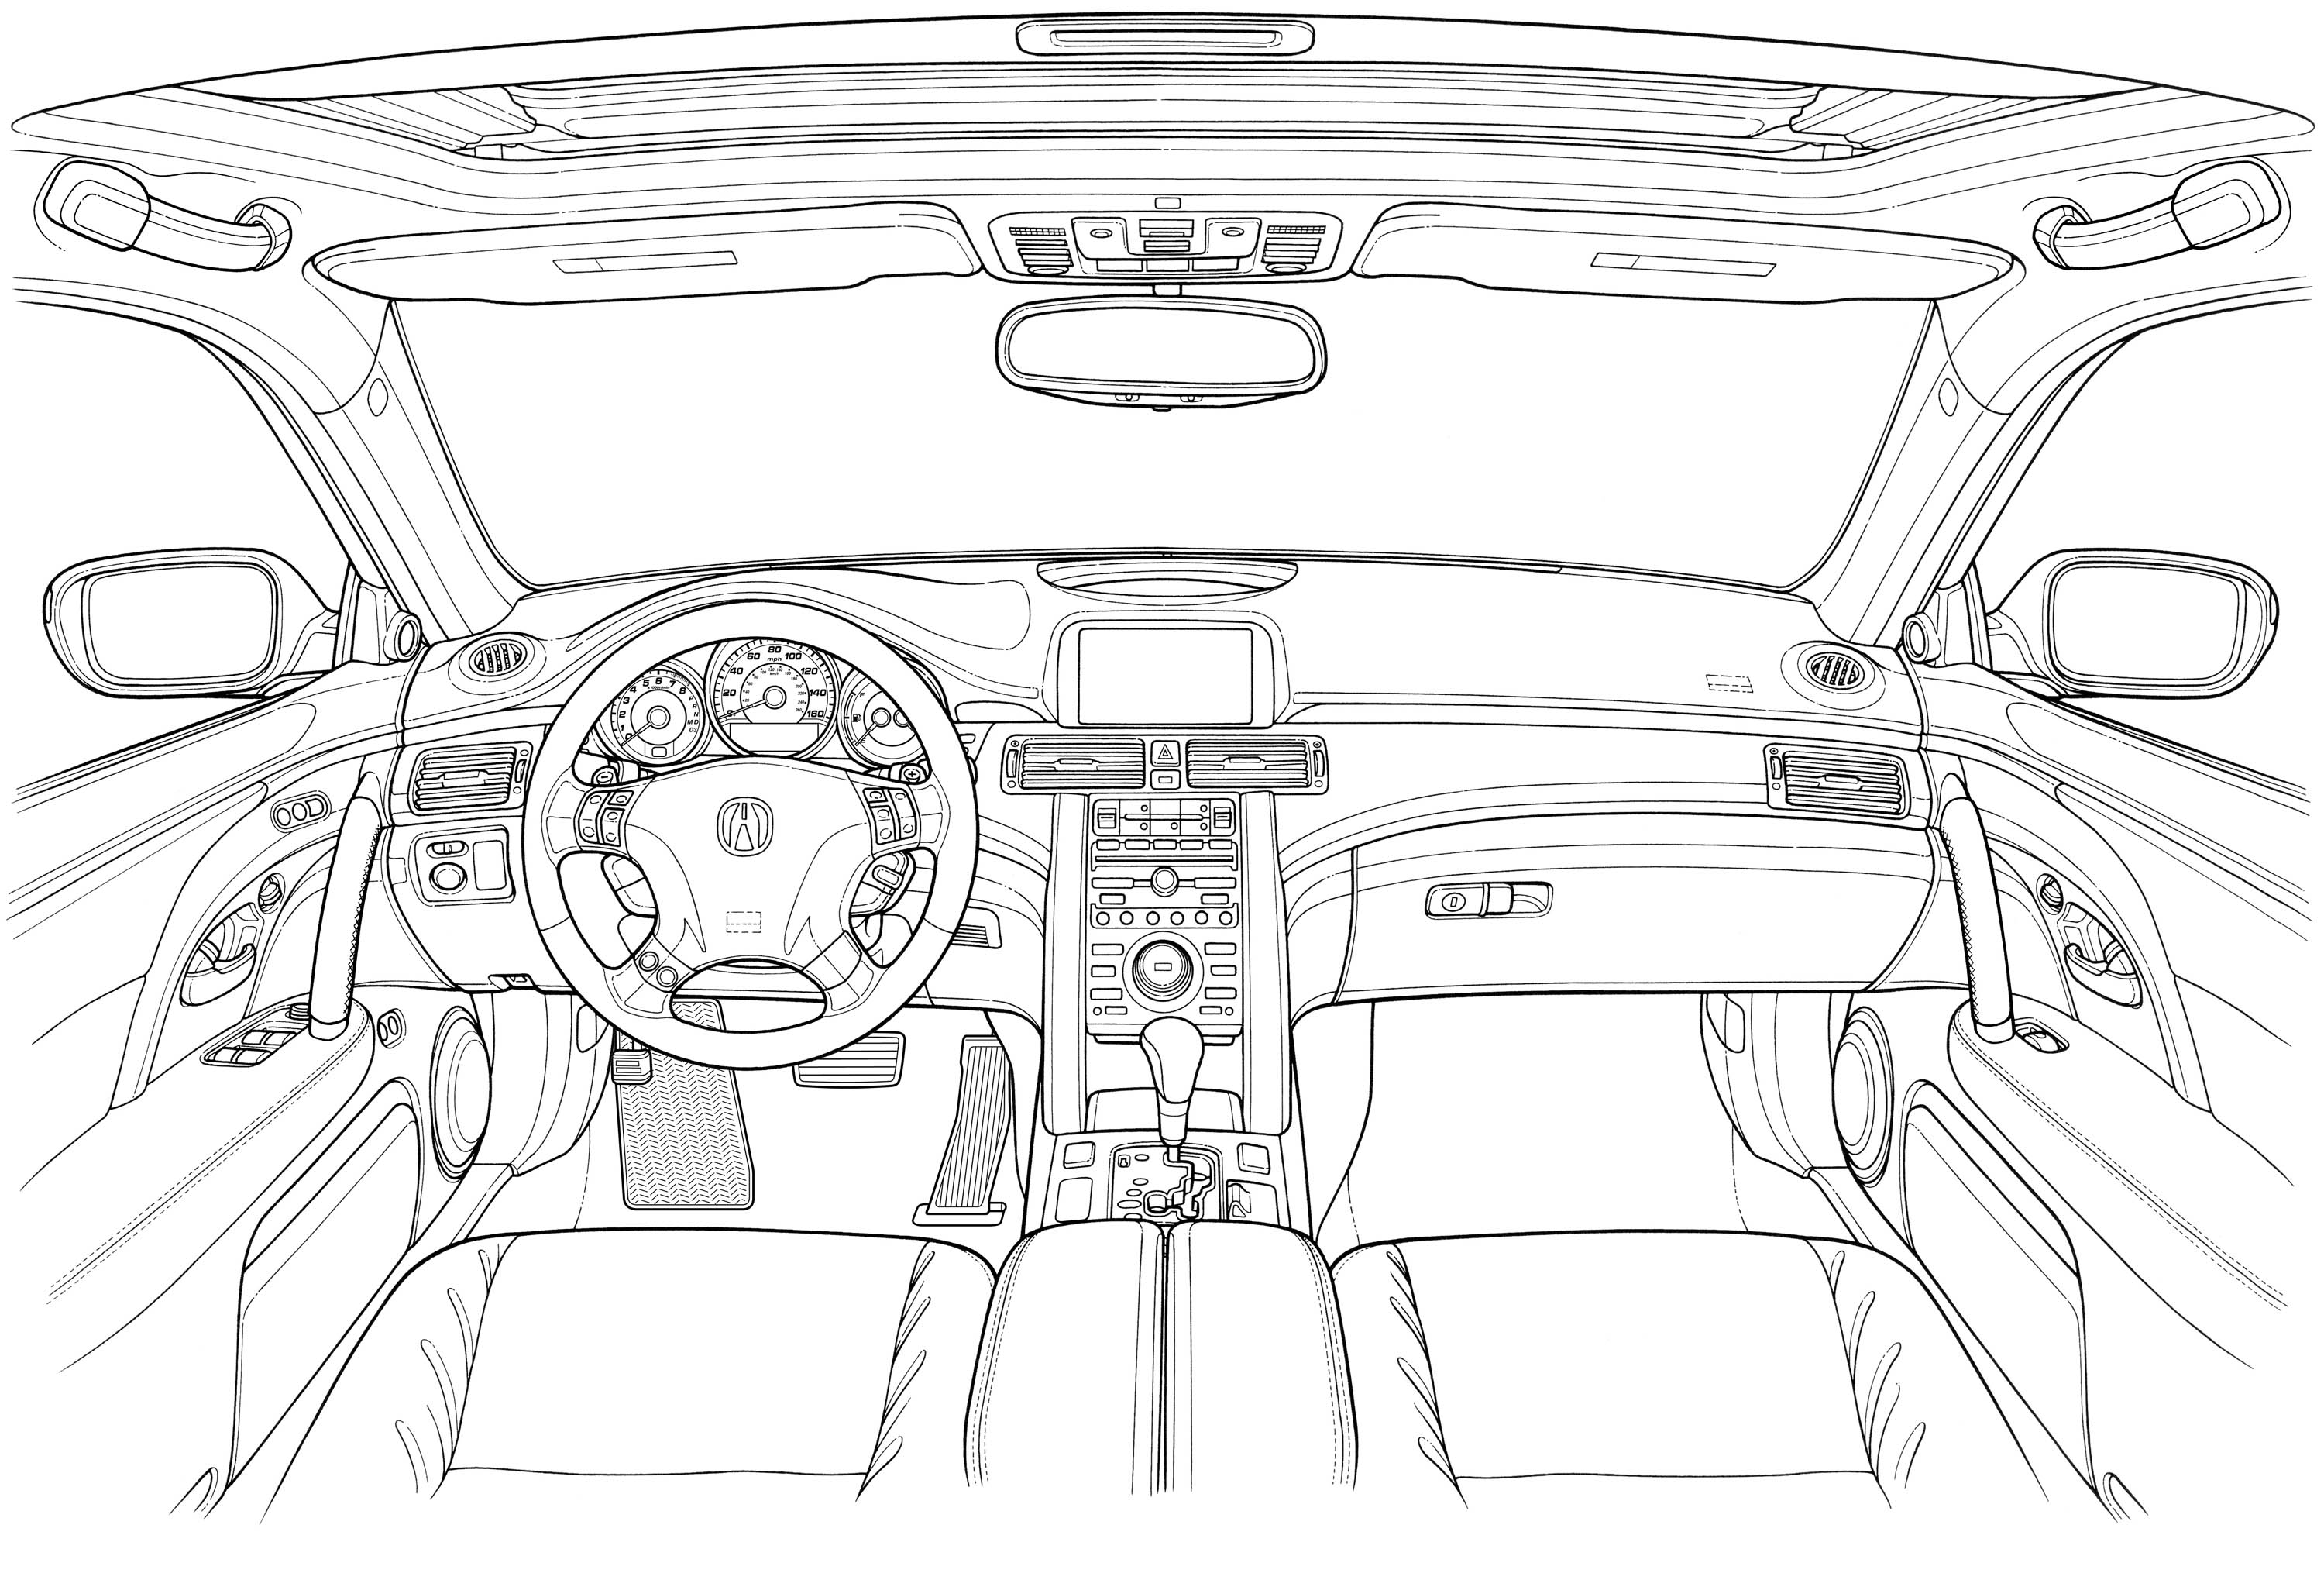 Acura Rl 2005 Blueprint Download Free Blueprint For 3d